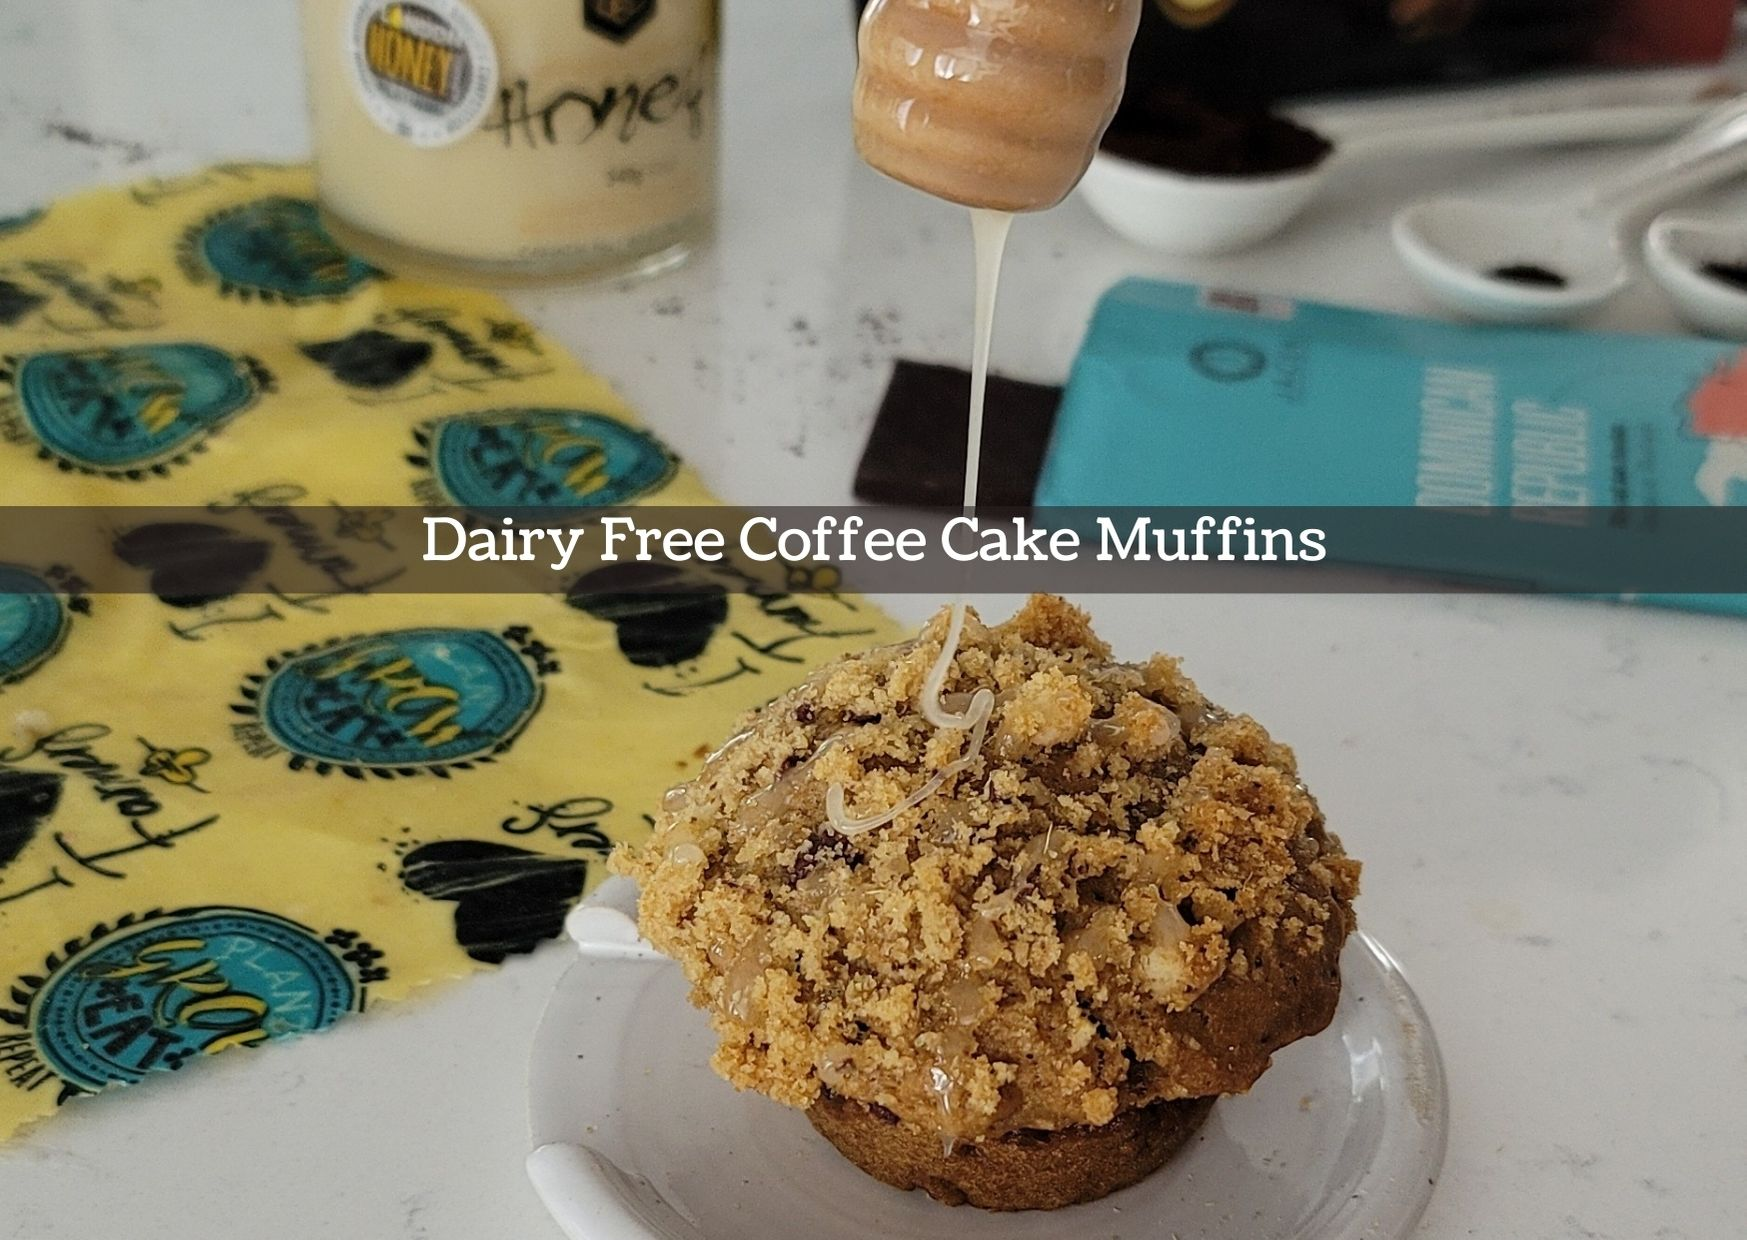 Honey drizzle on muffin